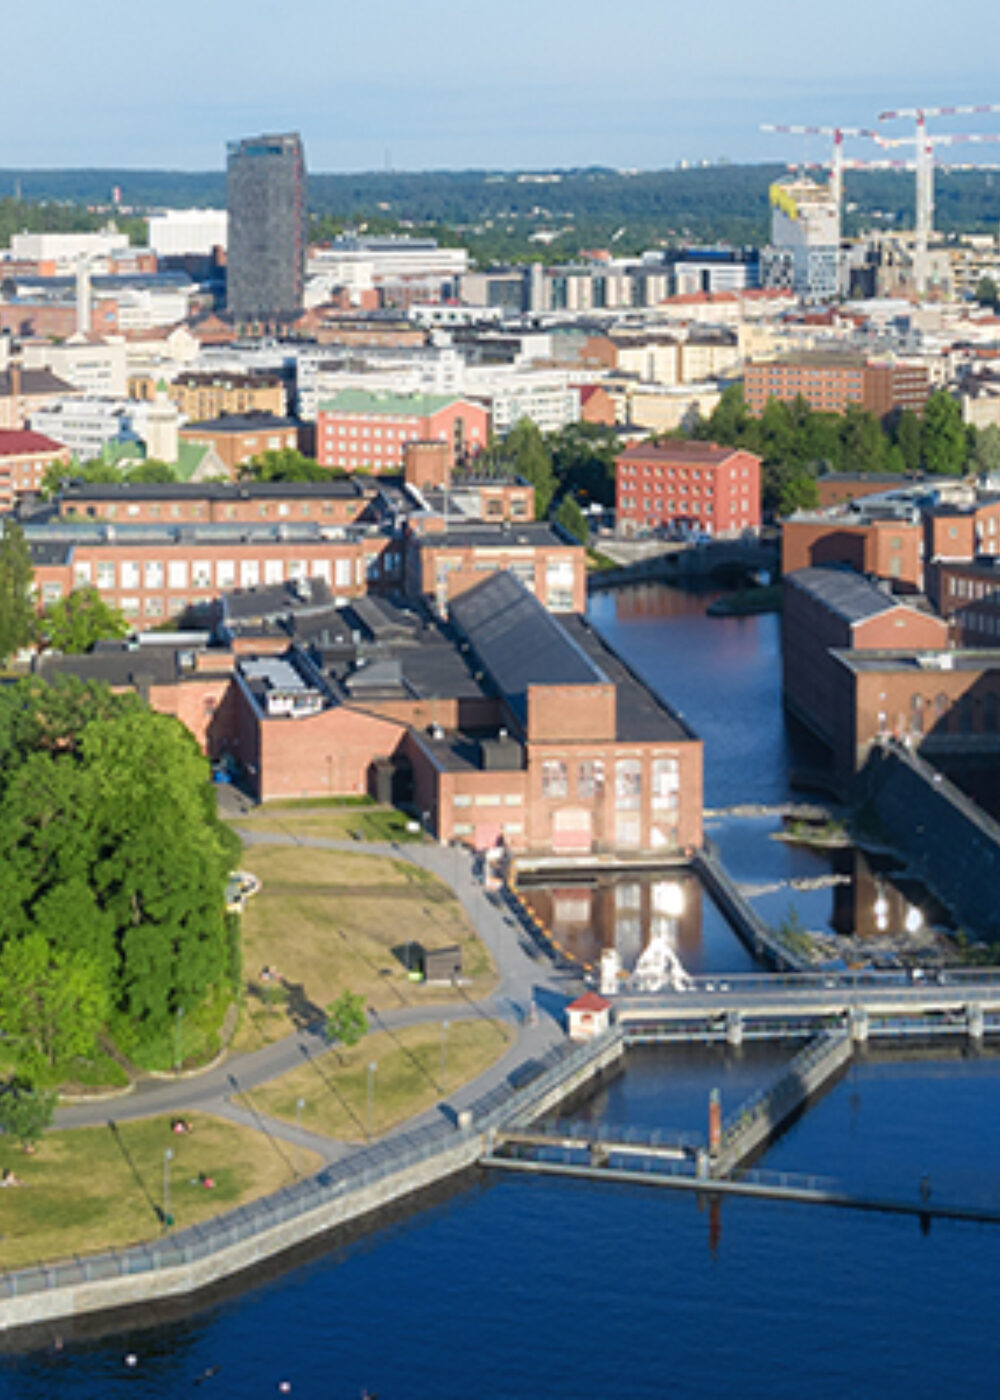 Green Motion Car Rental Finland Tampere Downtown 1440x400